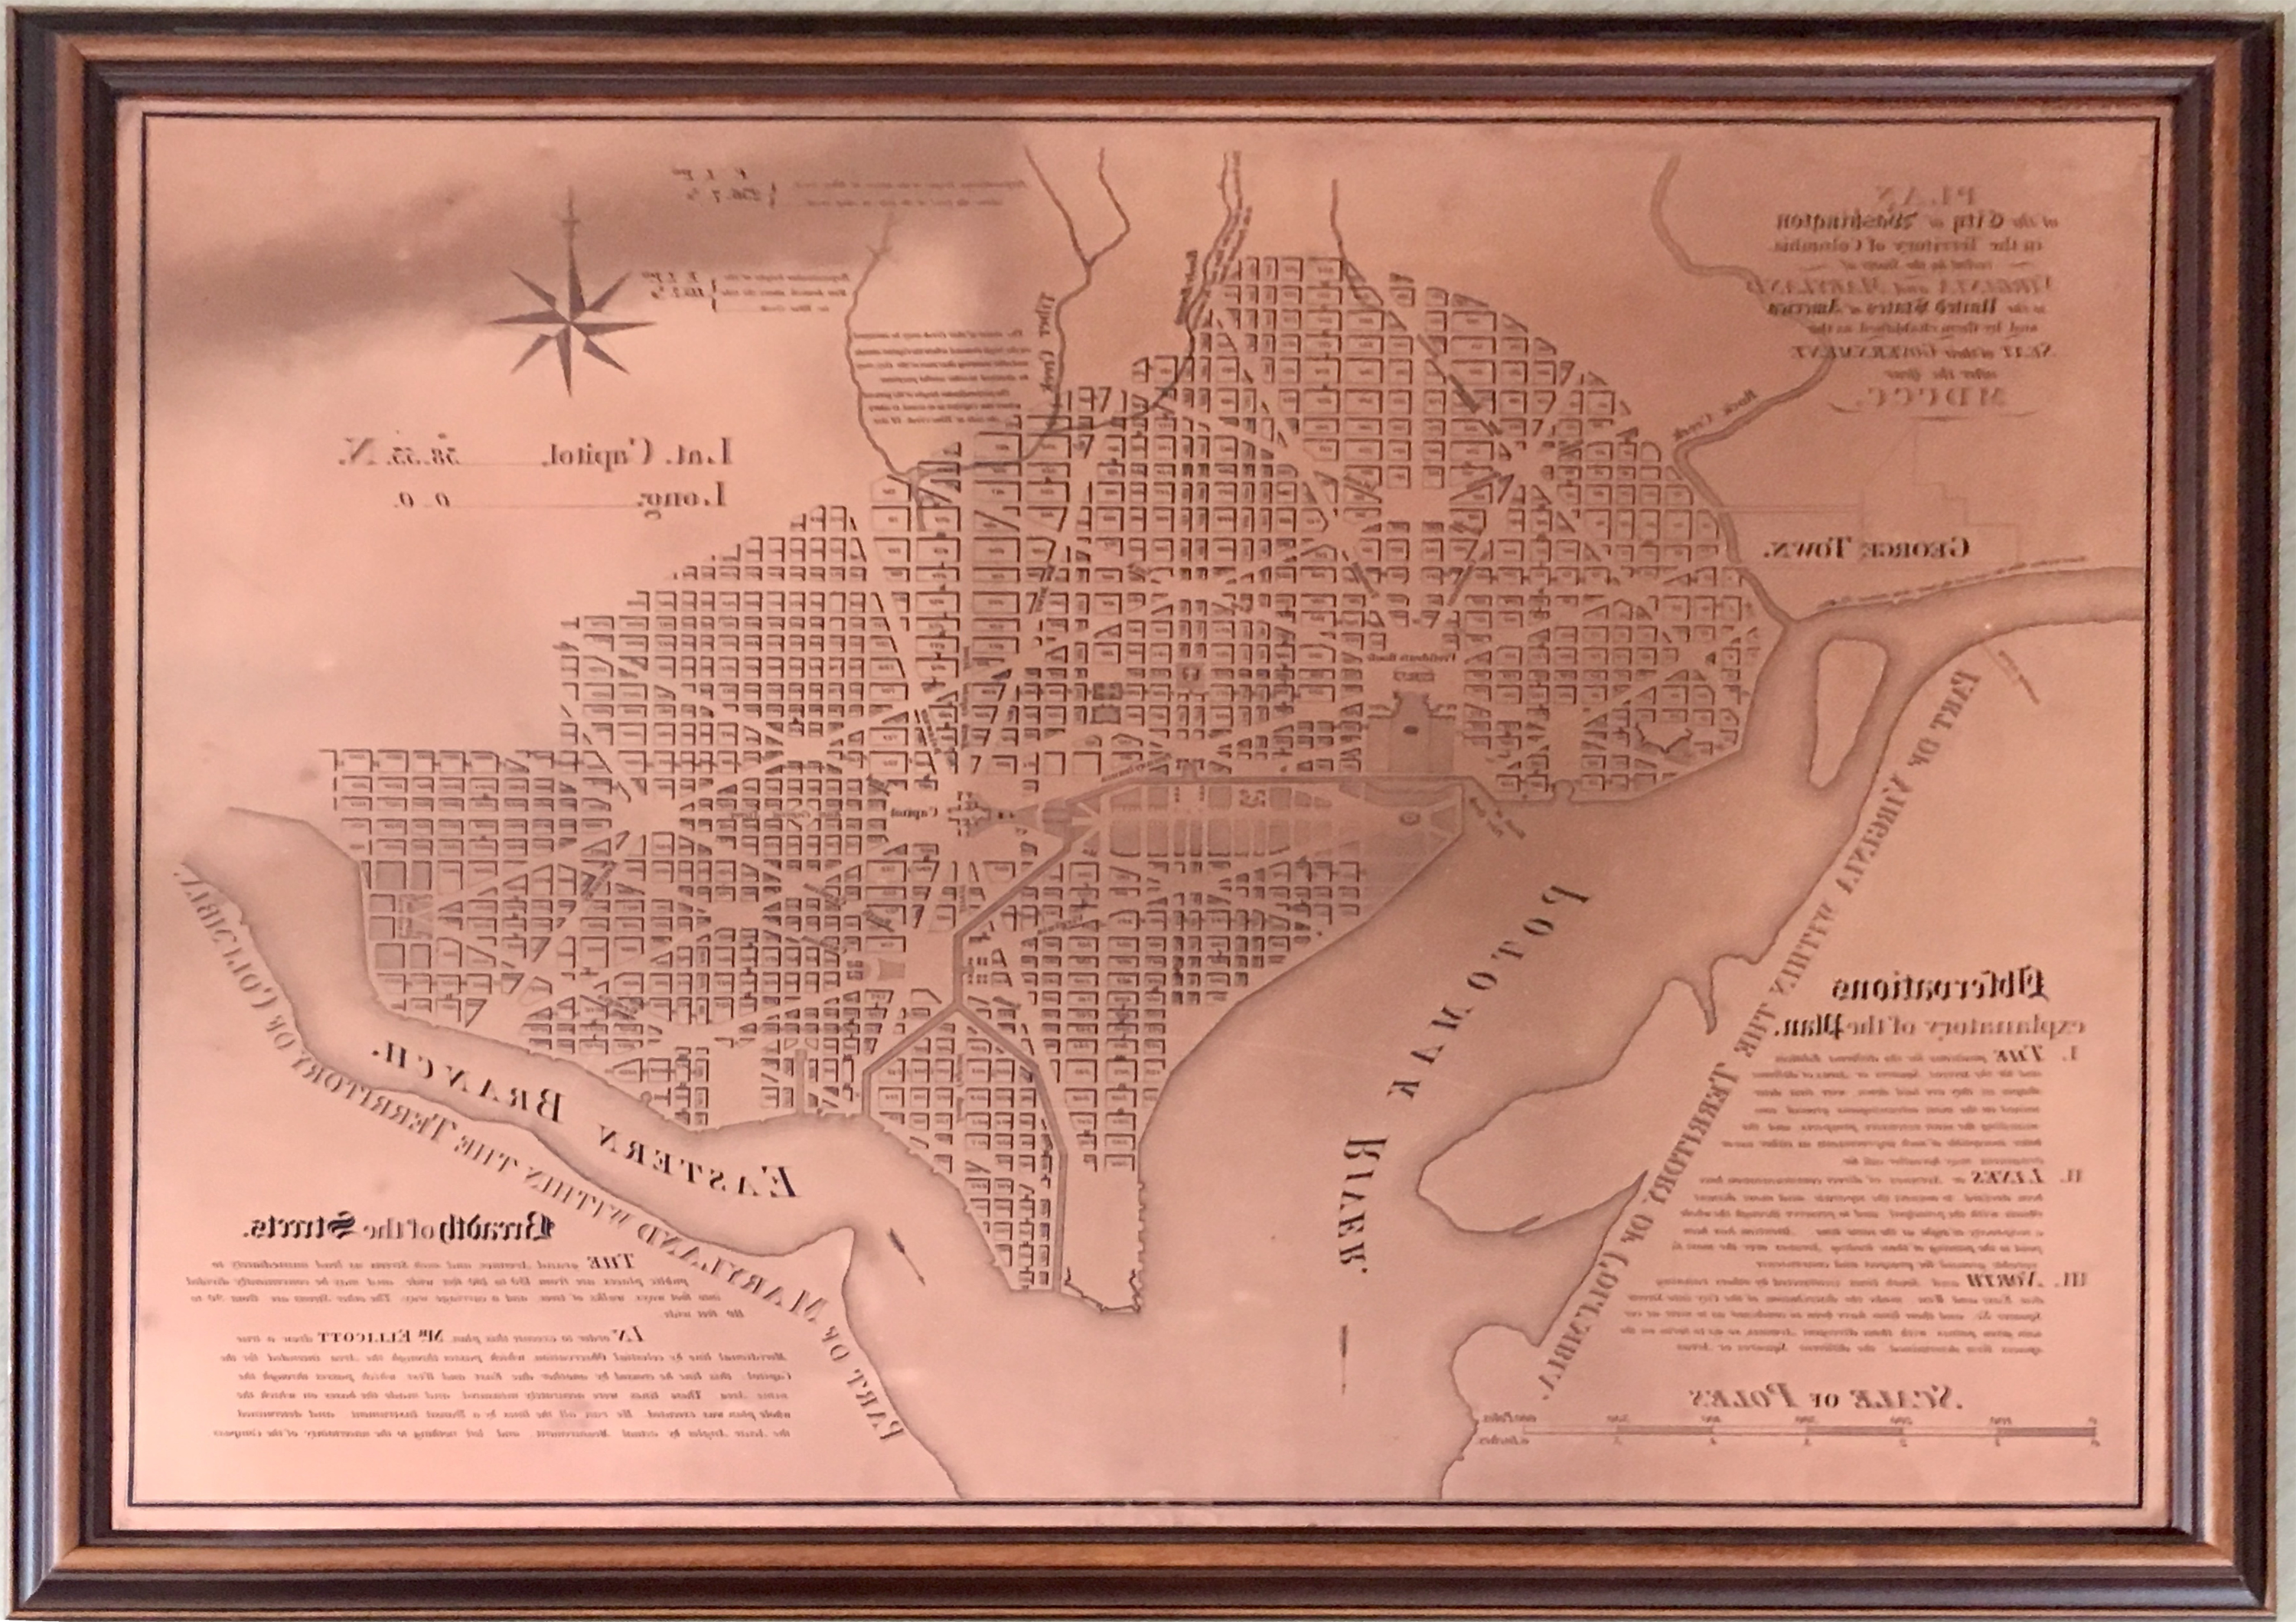 This copper plate, named No. 3043 PRICE 45 CENTS, is one of the 3000 series of special products produced by Coast Survey's predecessor, the Coast and Geodetic Survey. The Coast and Geodetic Survey primarily made nautical charts, but a number of maps in the 3000 series were instead maps of some thematic factor of interest (i.e., the Slaver Map, No. 3033; Glacier Bay, Alaska, No. 3095).